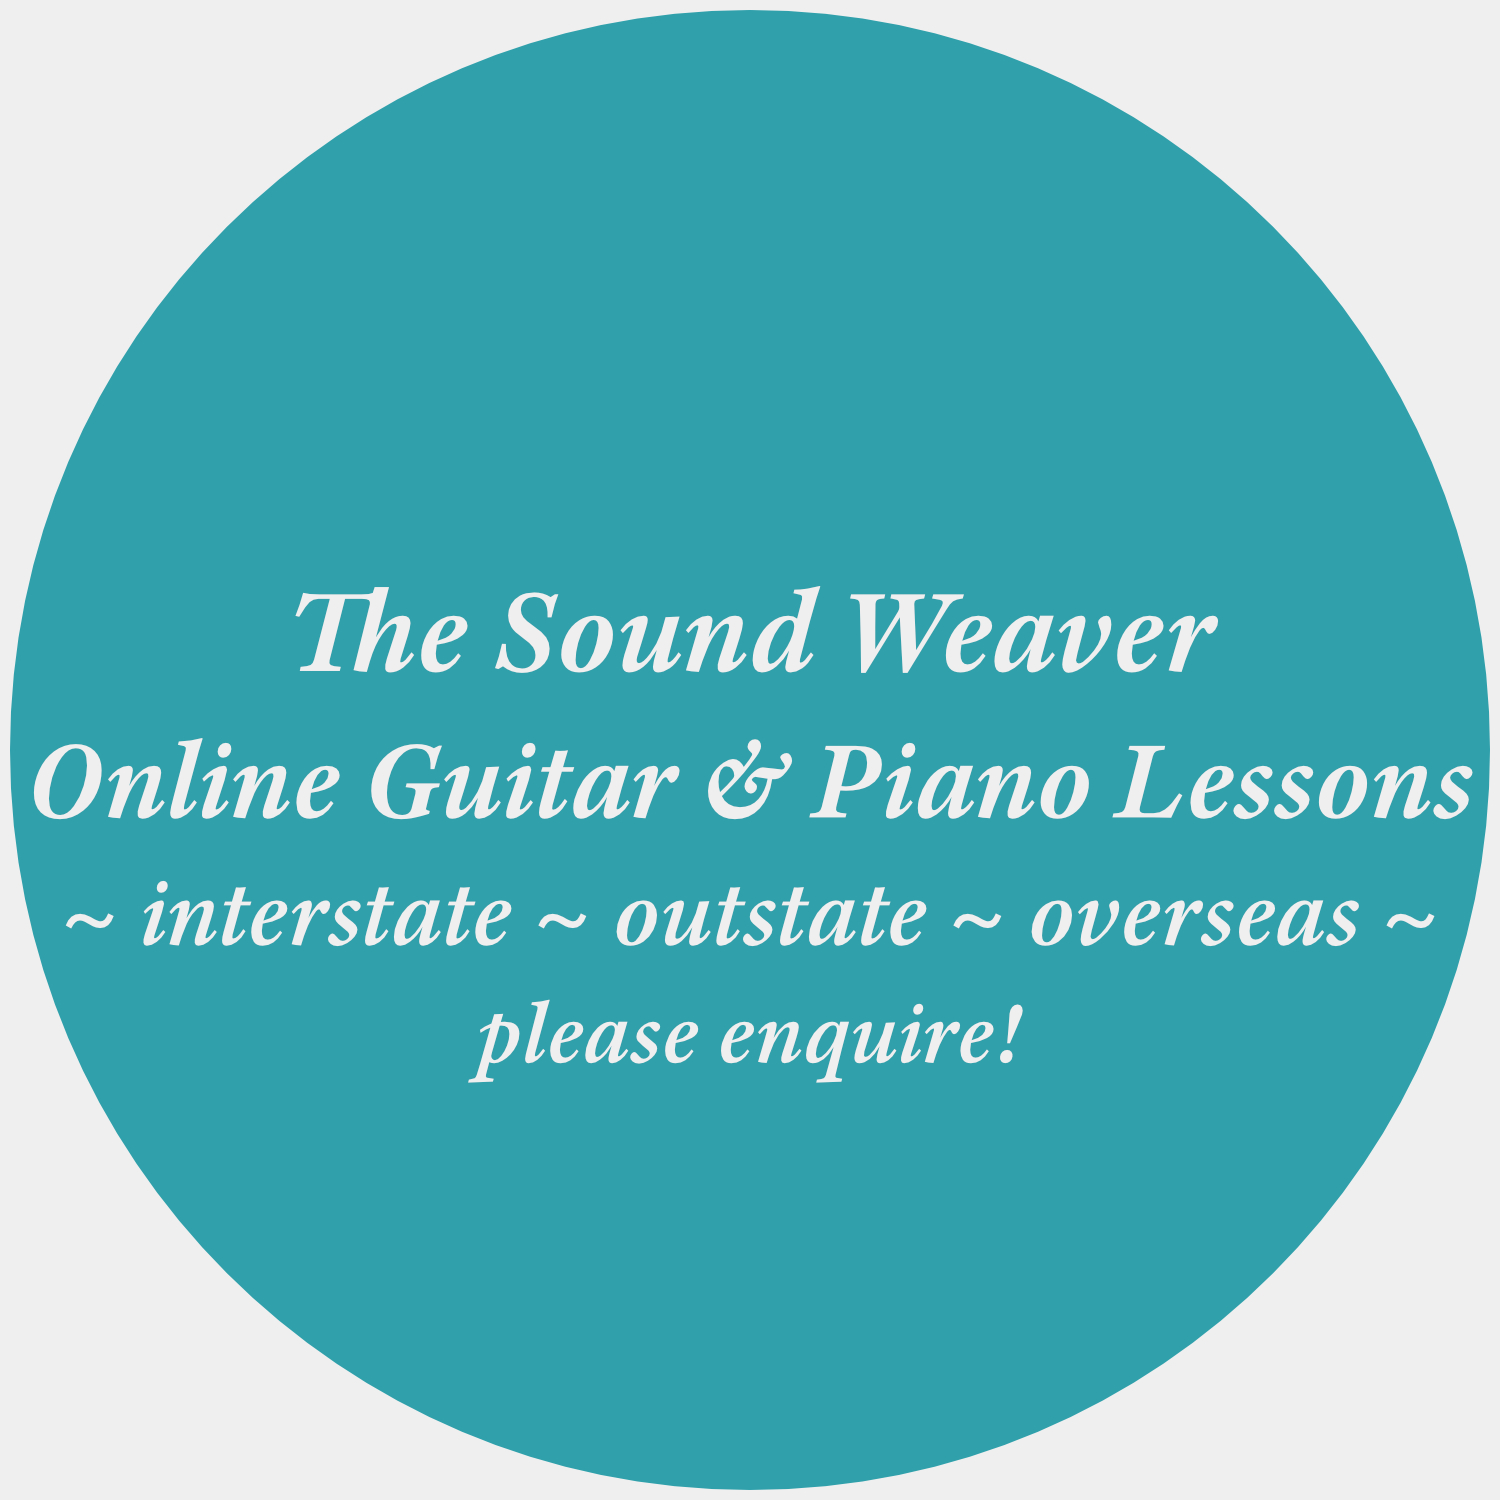 Book Now - Online Guitar & Piano Lessons